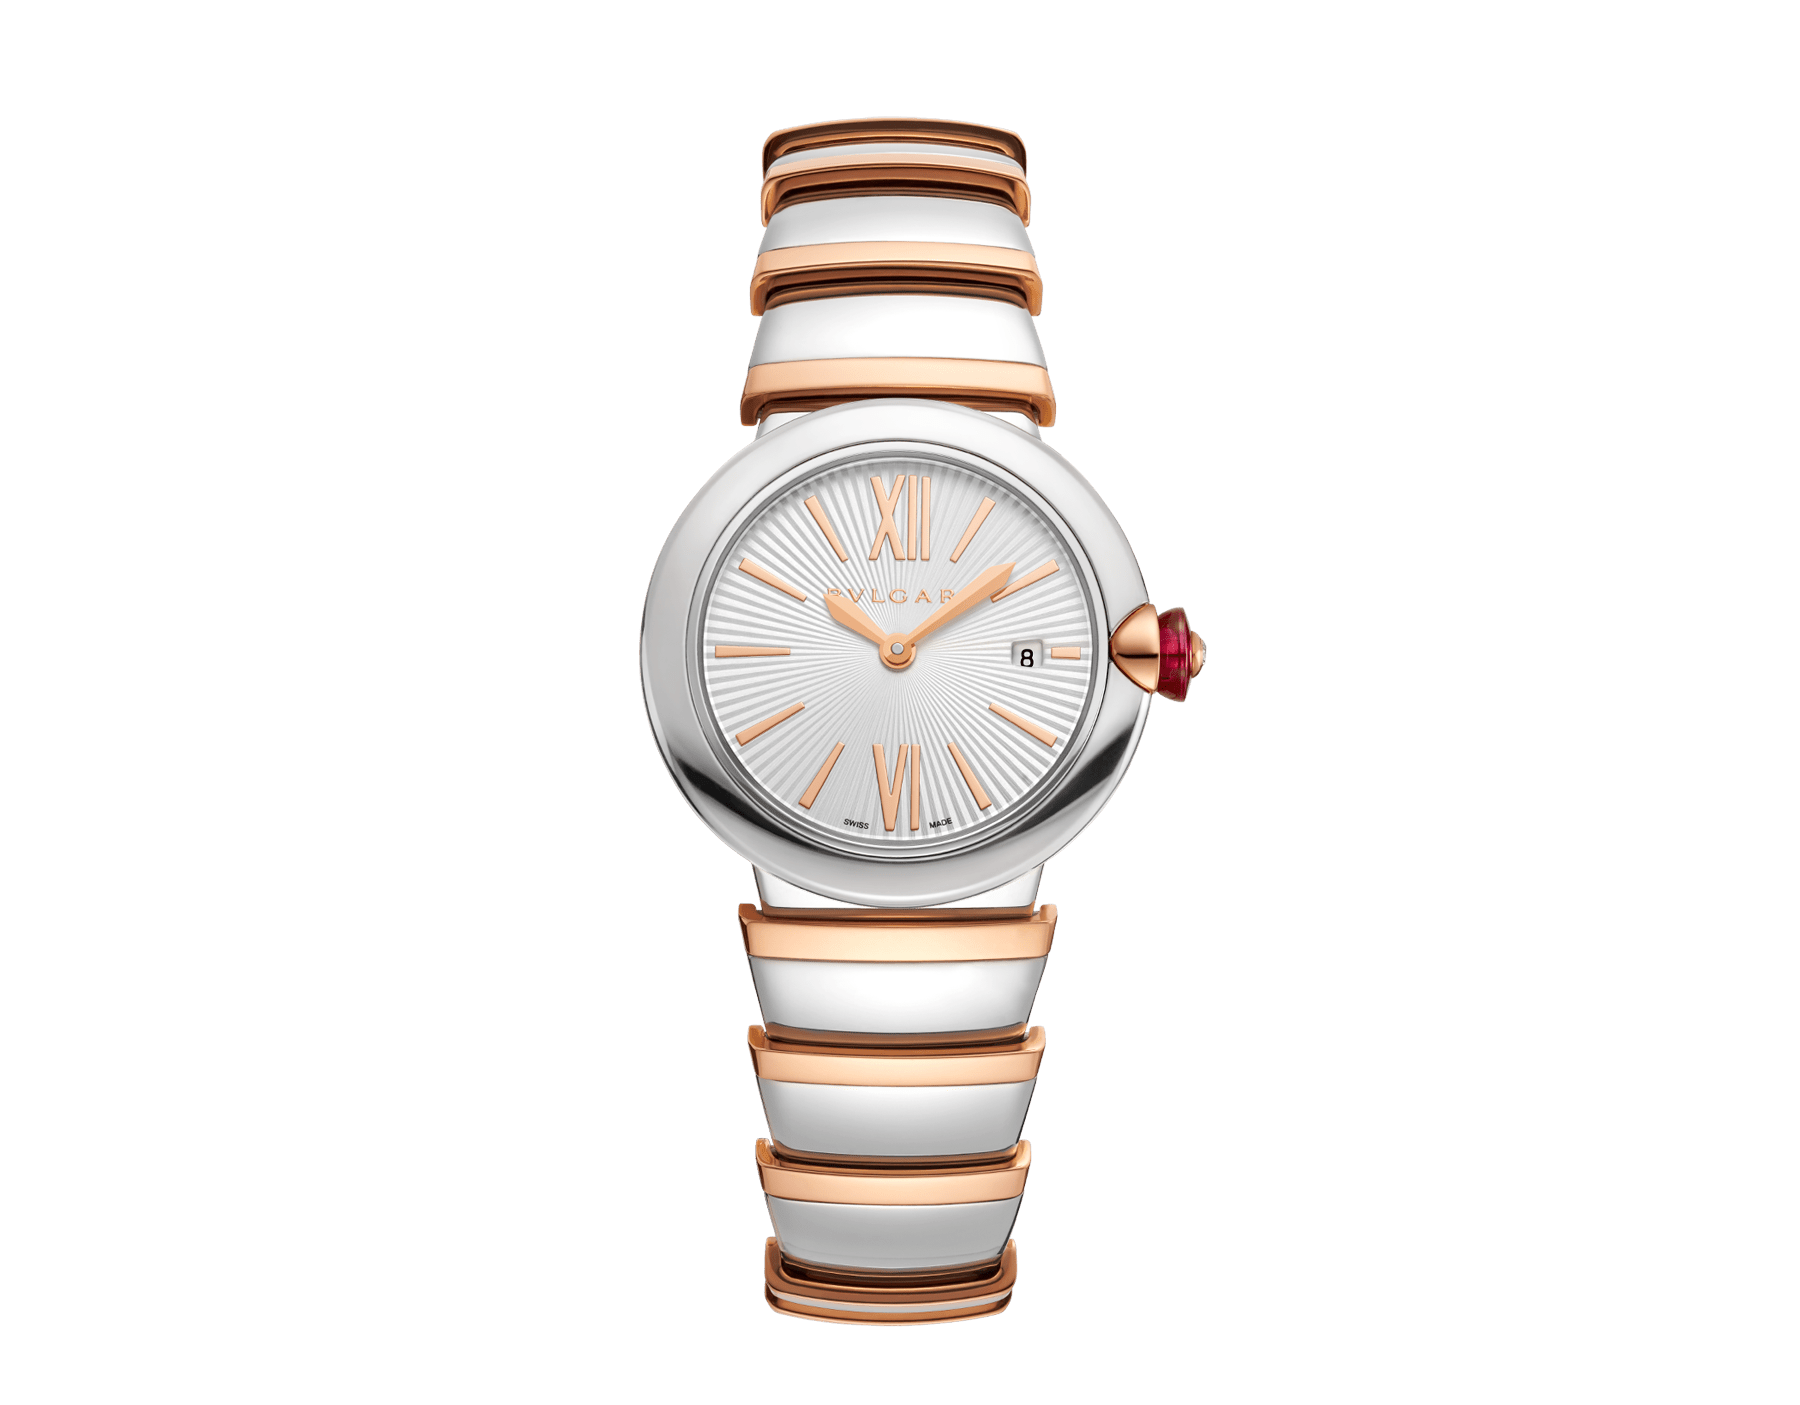 LVCEA watch with stainless steel case, silver opaline dial and bracelet in 18 kt rose gold and stainless steel. 102193 image 1